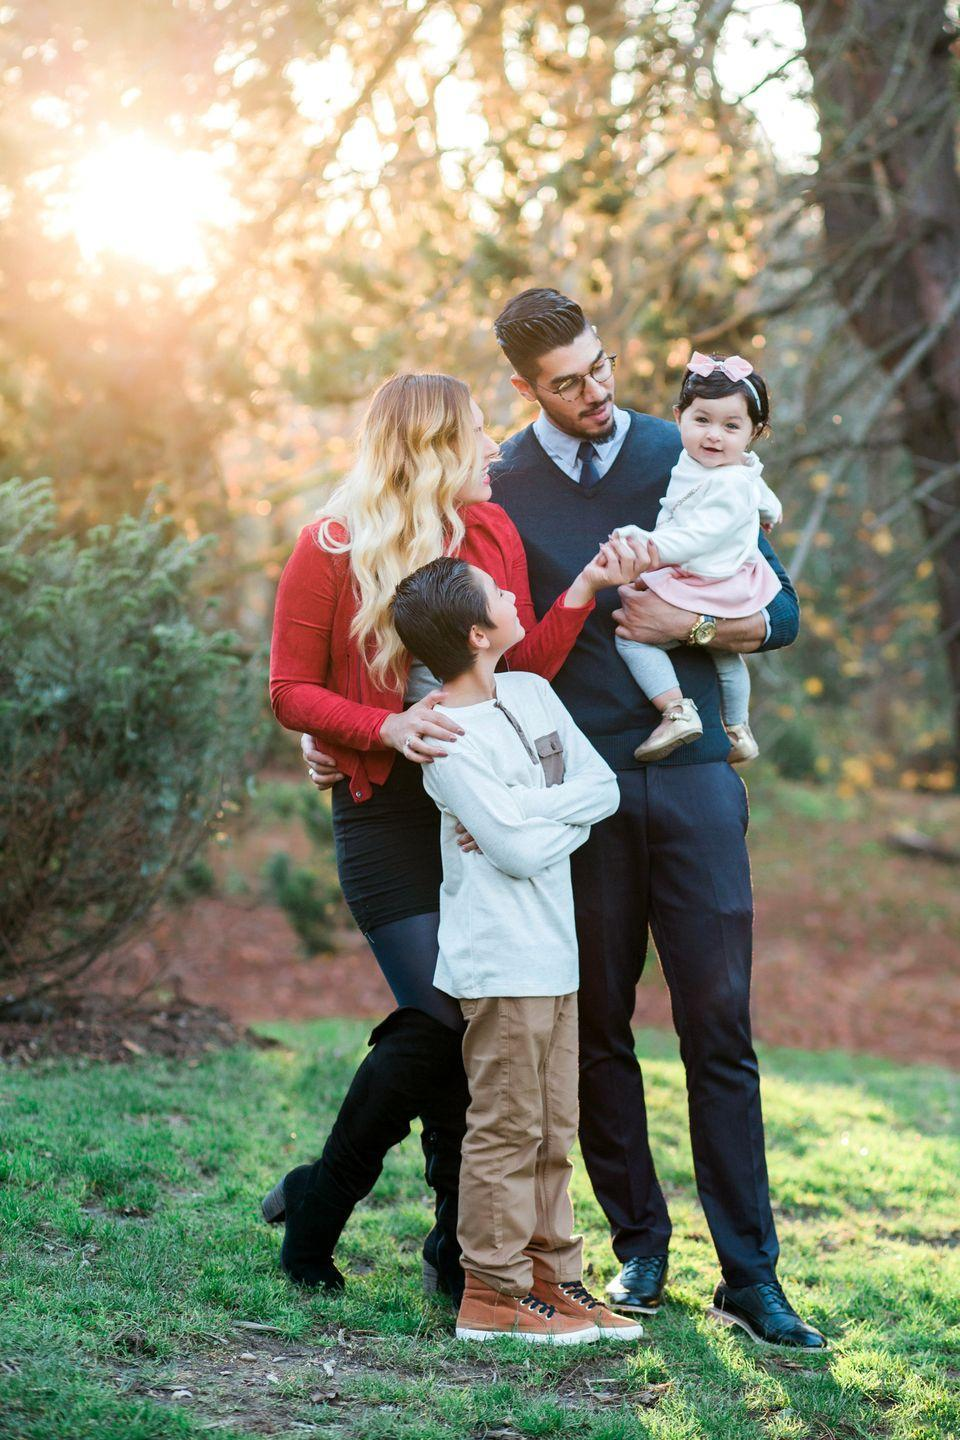 """<p>You want those formal, <a href=""""https://www.goodhousekeeping.com/life/parenting/news/a44784/color-coded-grandkids-photo/"""" rel=""""nofollow noopener"""" target=""""_blank"""" data-ylk=""""slk:looking-straight-ahead shots"""" class=""""link rapid-noclick-resp"""">looking-straight-ahead shots</a>. But you also want to capture what you're like together as a family when no one is looking. """"I always try to get a few portraits of the family, as well as candid images of them interacting with each other,"""" says Wojtowicz. """"Looking at each other and laughing together will help the photographer capture real in-the-moment images.""""<br></p><p>""""Quite often you can get candids just by constantly clicking the shutter,"""" adds Brandt. """"Someone is always looking at someone else.""""</p>"""